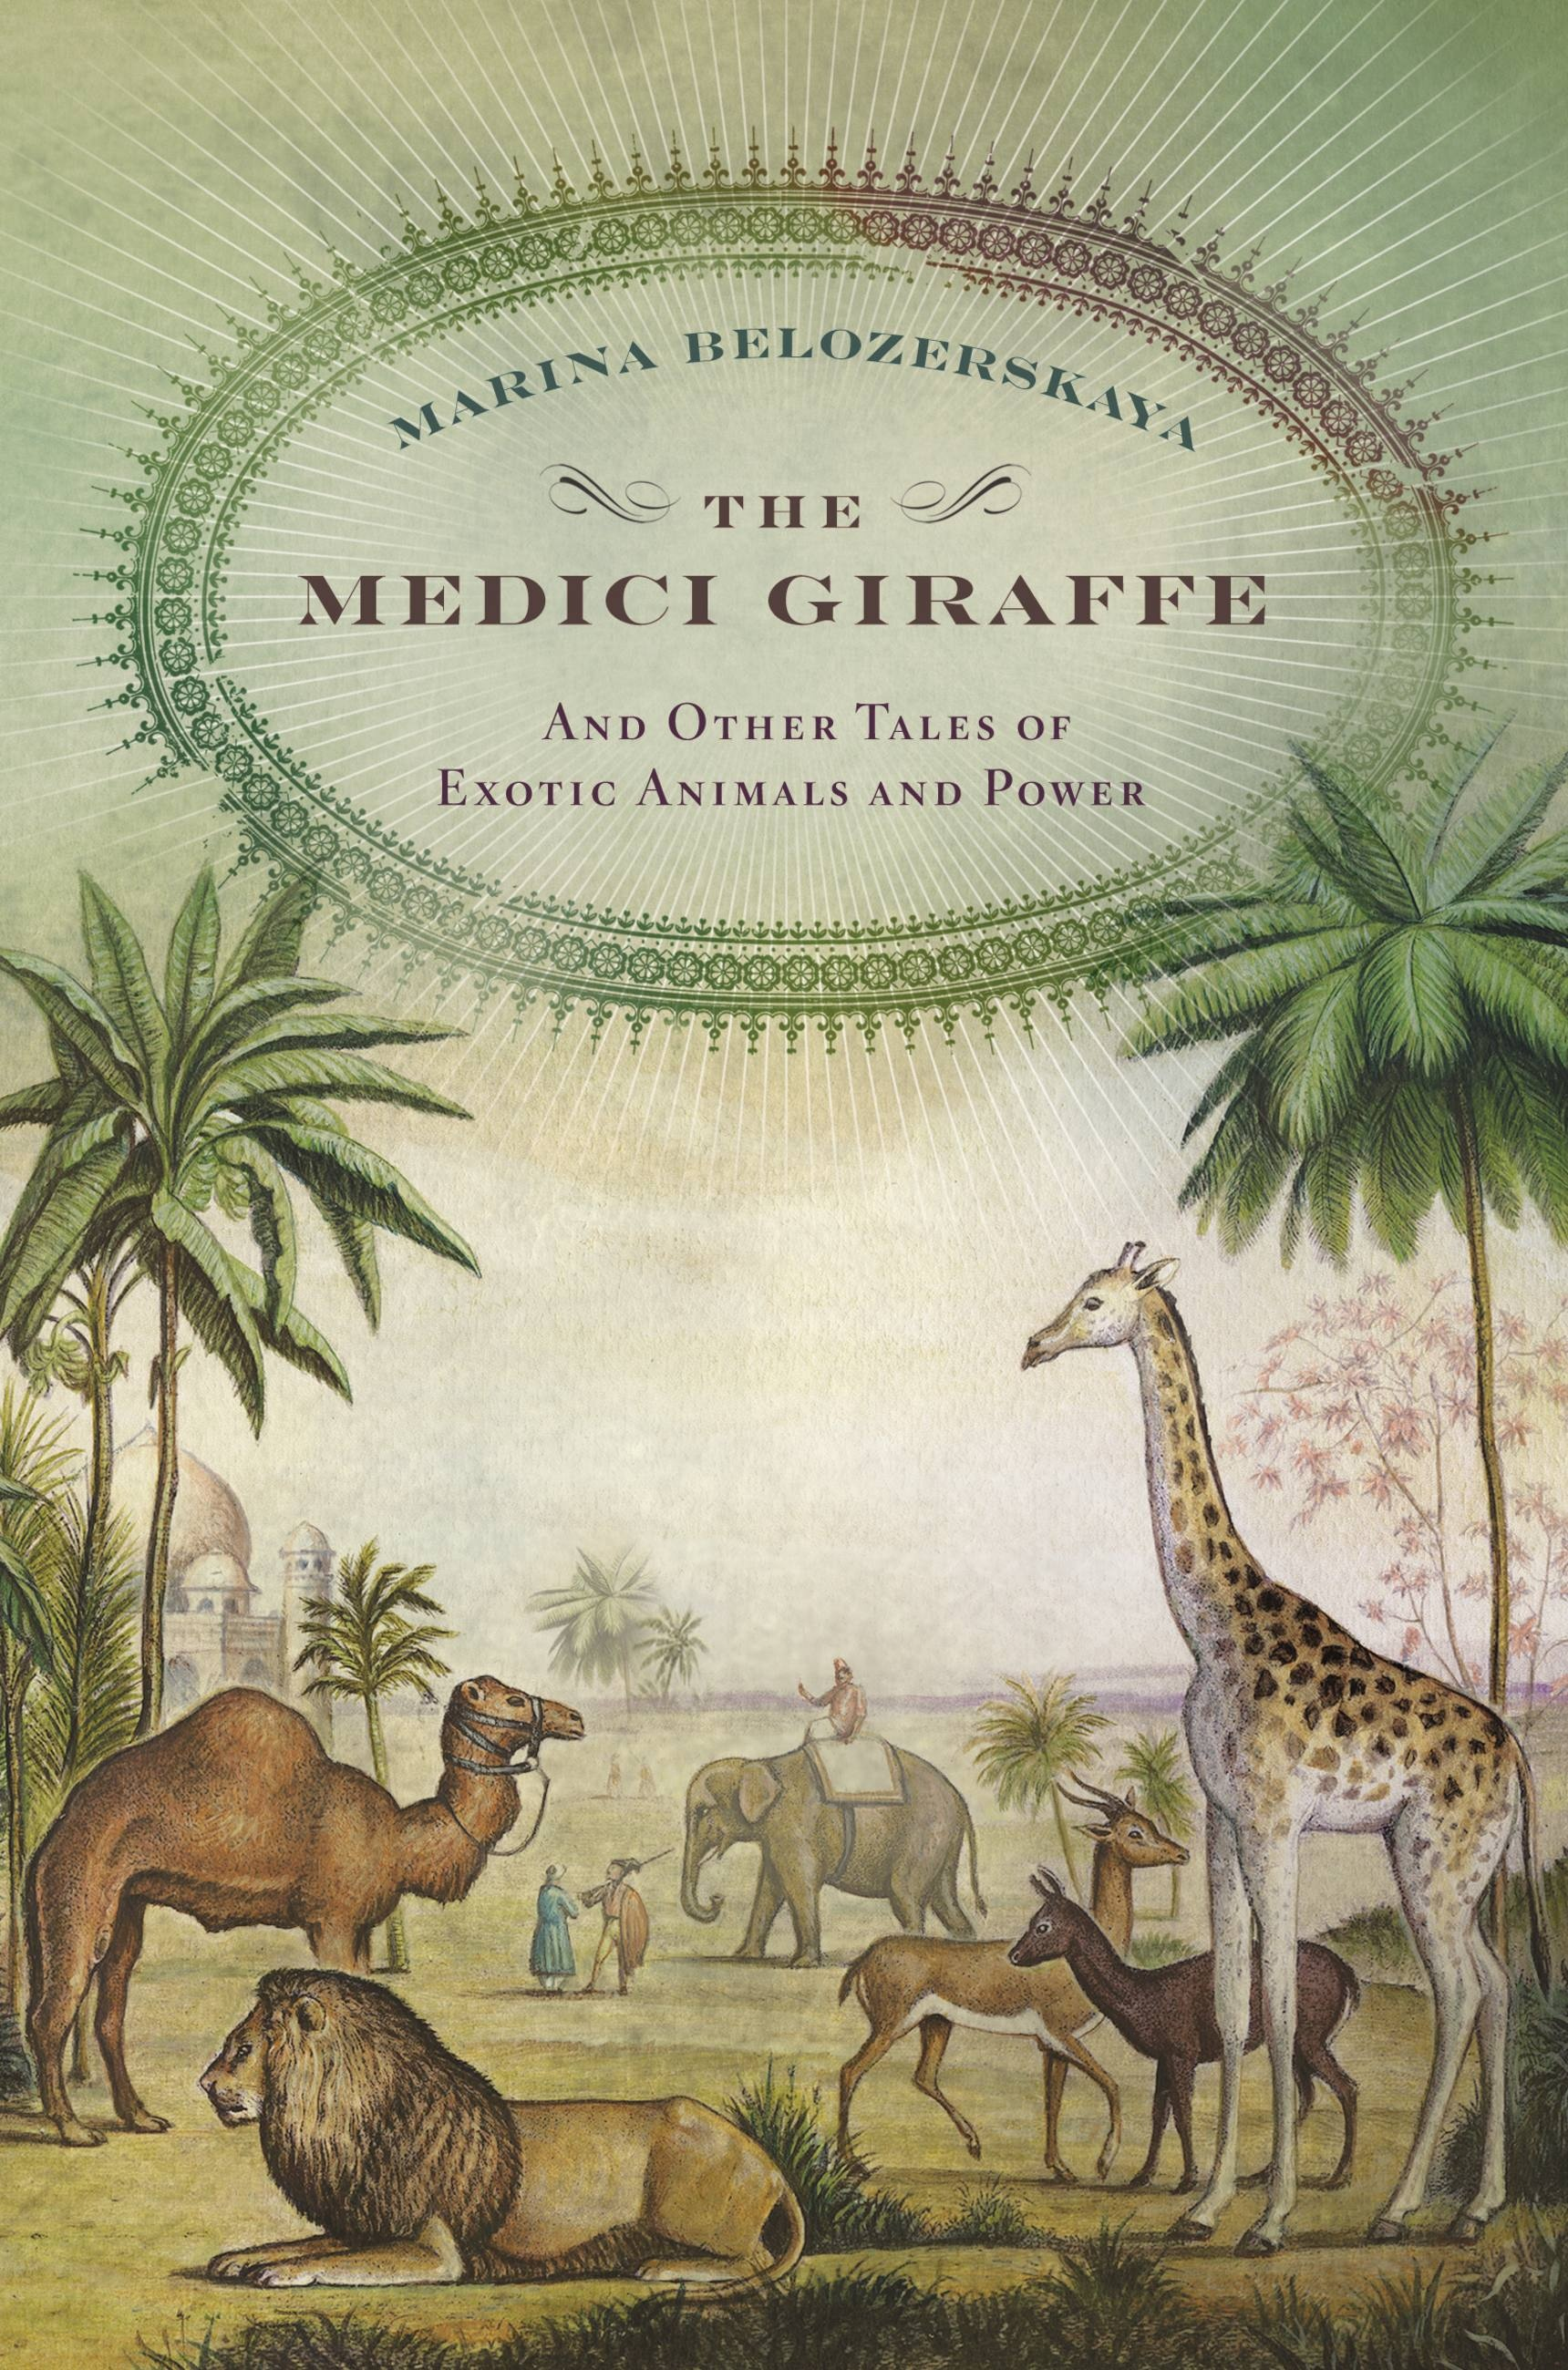 The Medici Giraffe